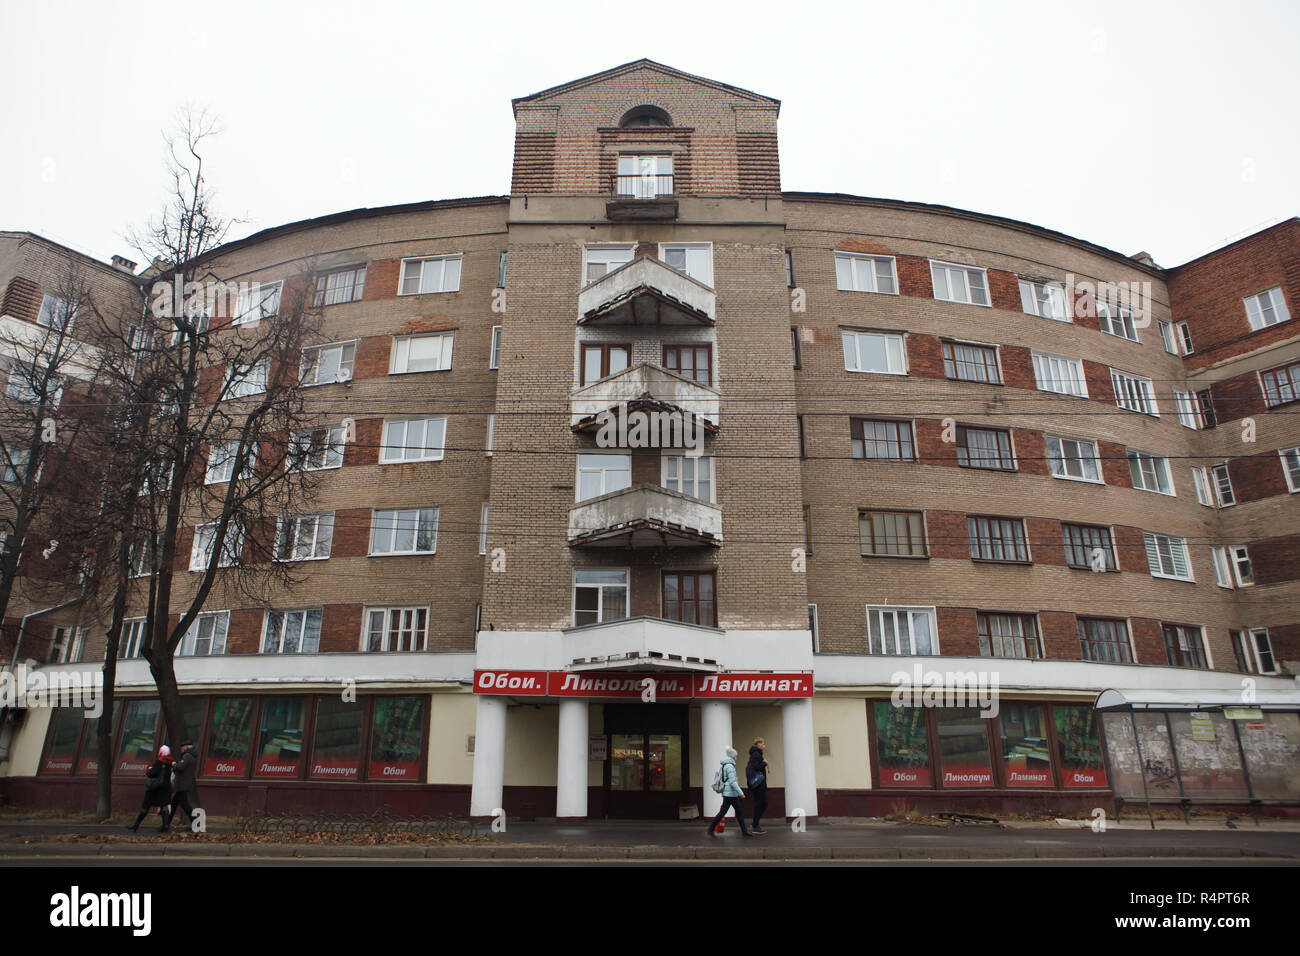 Constructivist dwelling complex nicknamed the Horseshoe House in Ivanovo, Russia. The apartment building designed by Soviet modernist architect Alexander Panov was built in 1933-1934 in Gromoboya Street as a dwelling complex for the staff of the OGPU, secret police of the Soviet Union from 1923 to 1934, later known as the NKVD and the KGB. ATTENTION: This image is a part of a photo essay of 35 photos featuring Soviet constructivist architecture in Ivanovo. - Stock Image